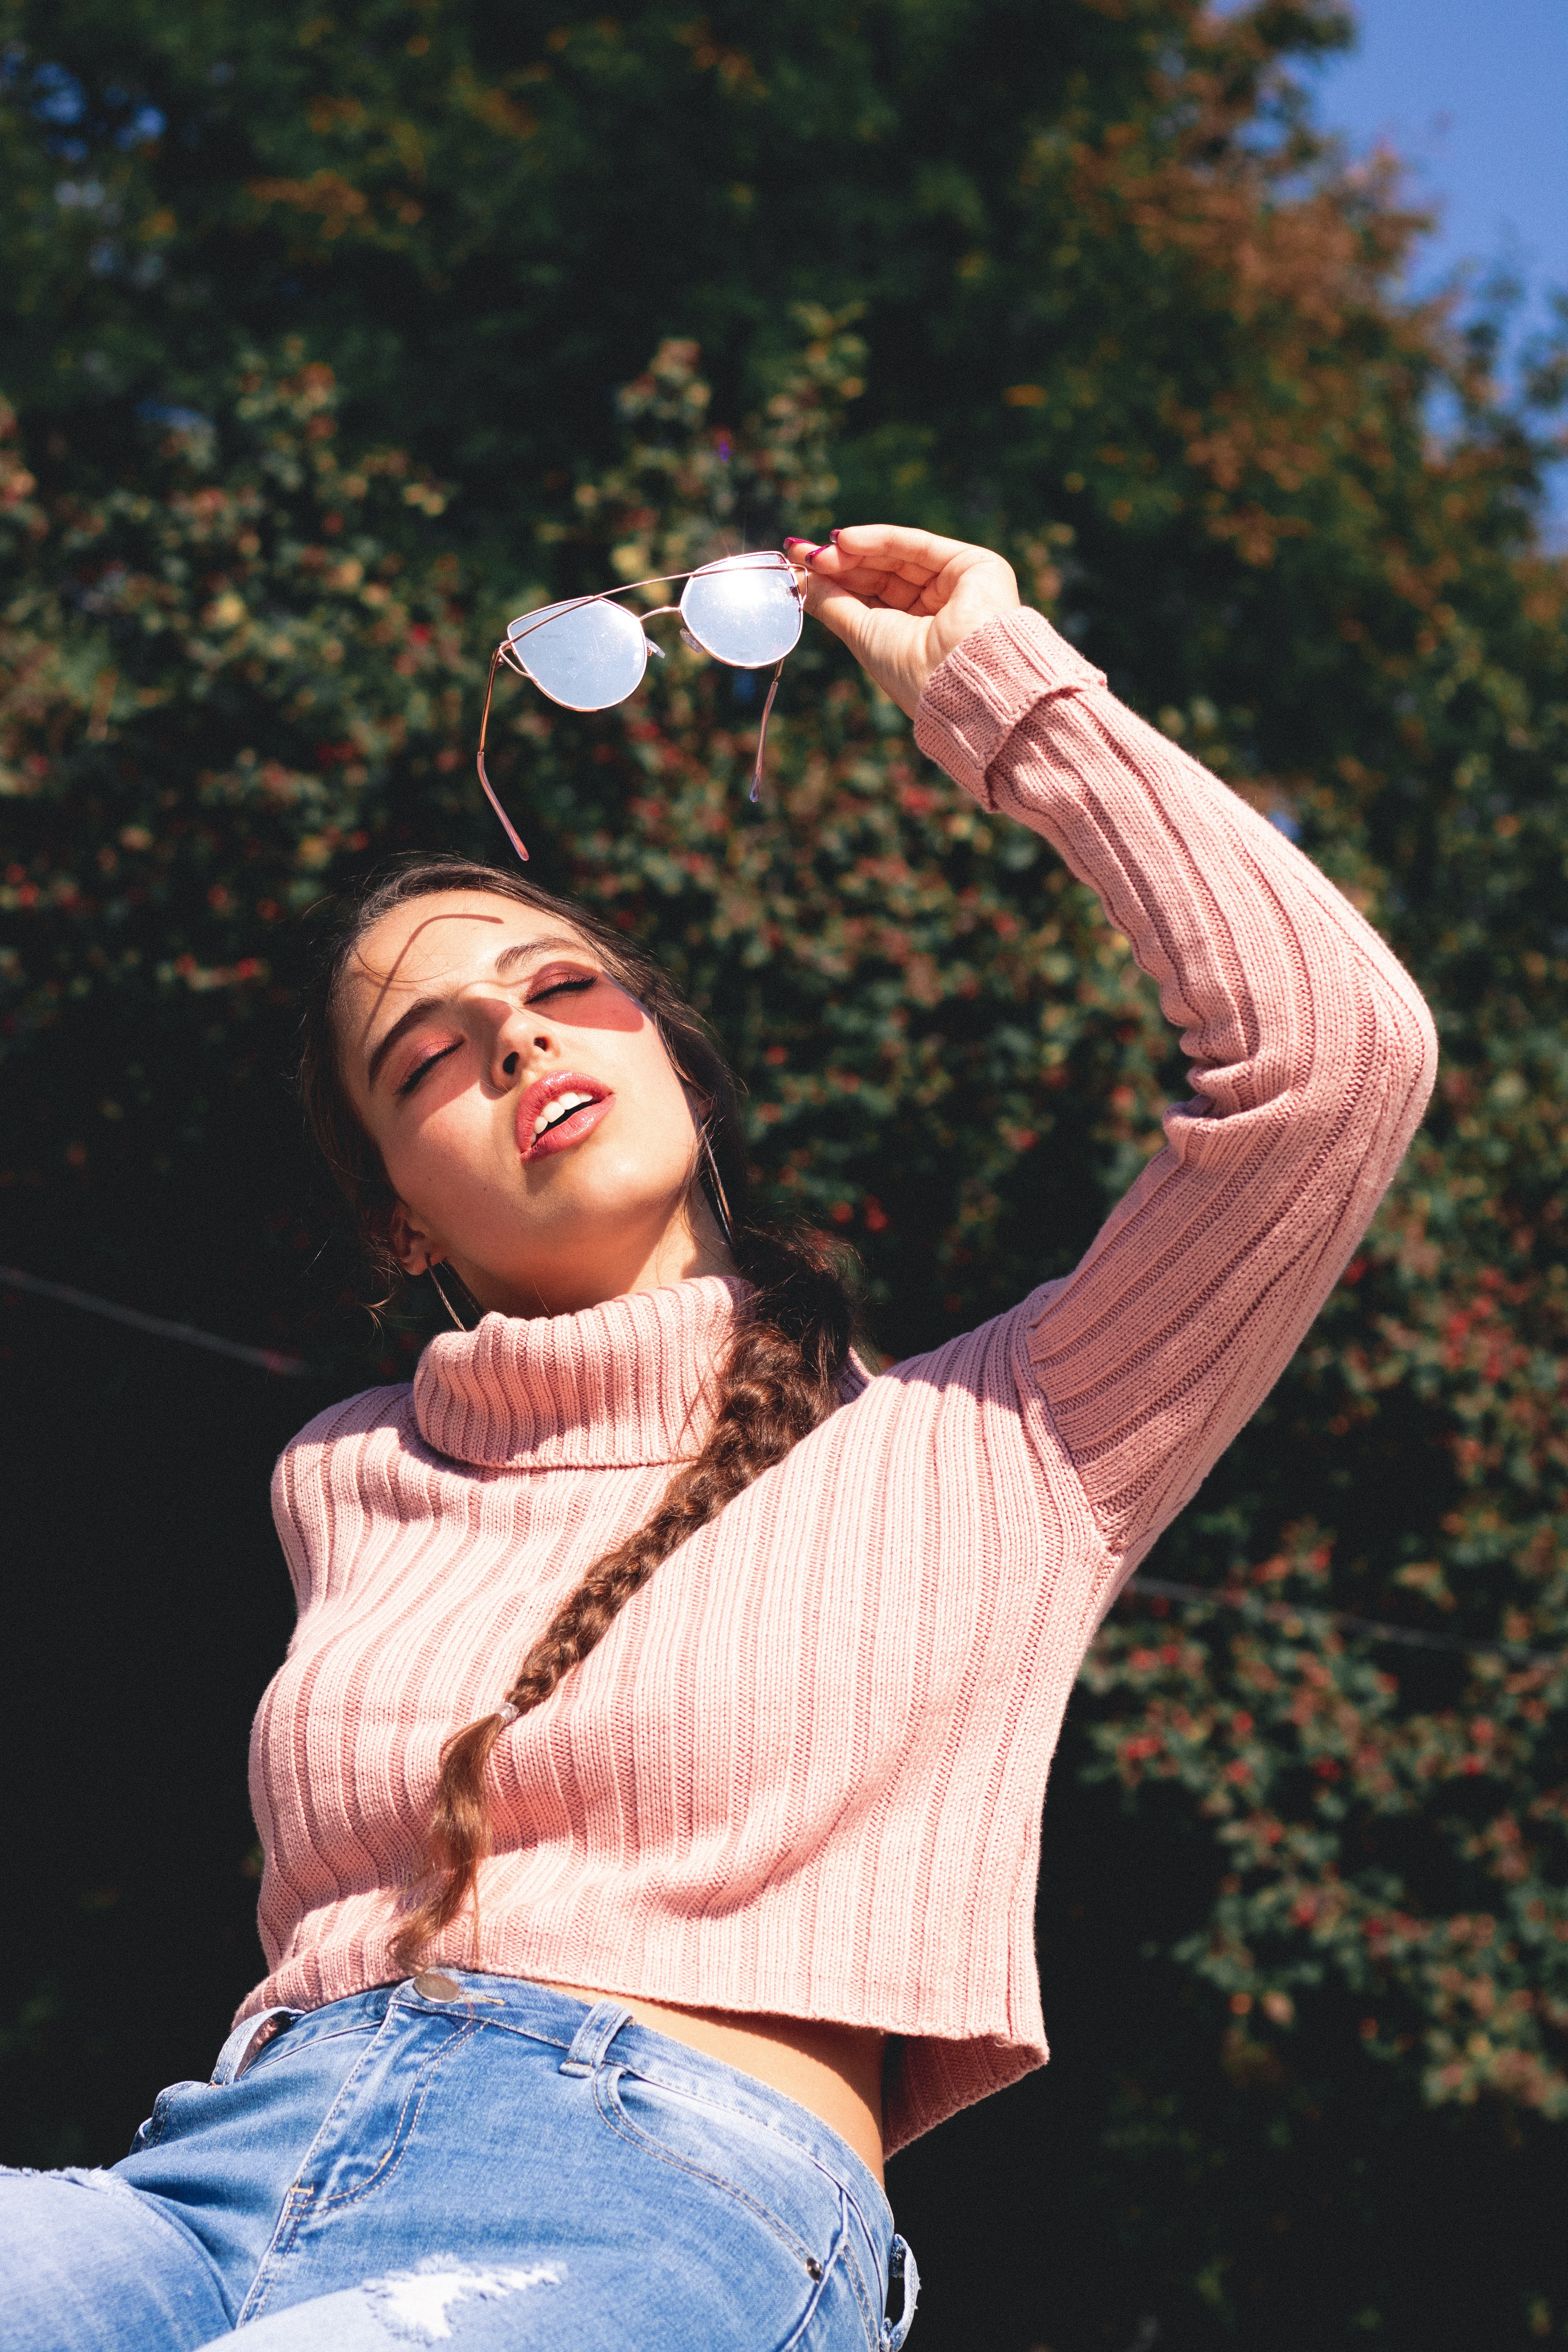 woman wearing pink sweater while holding sunglasses